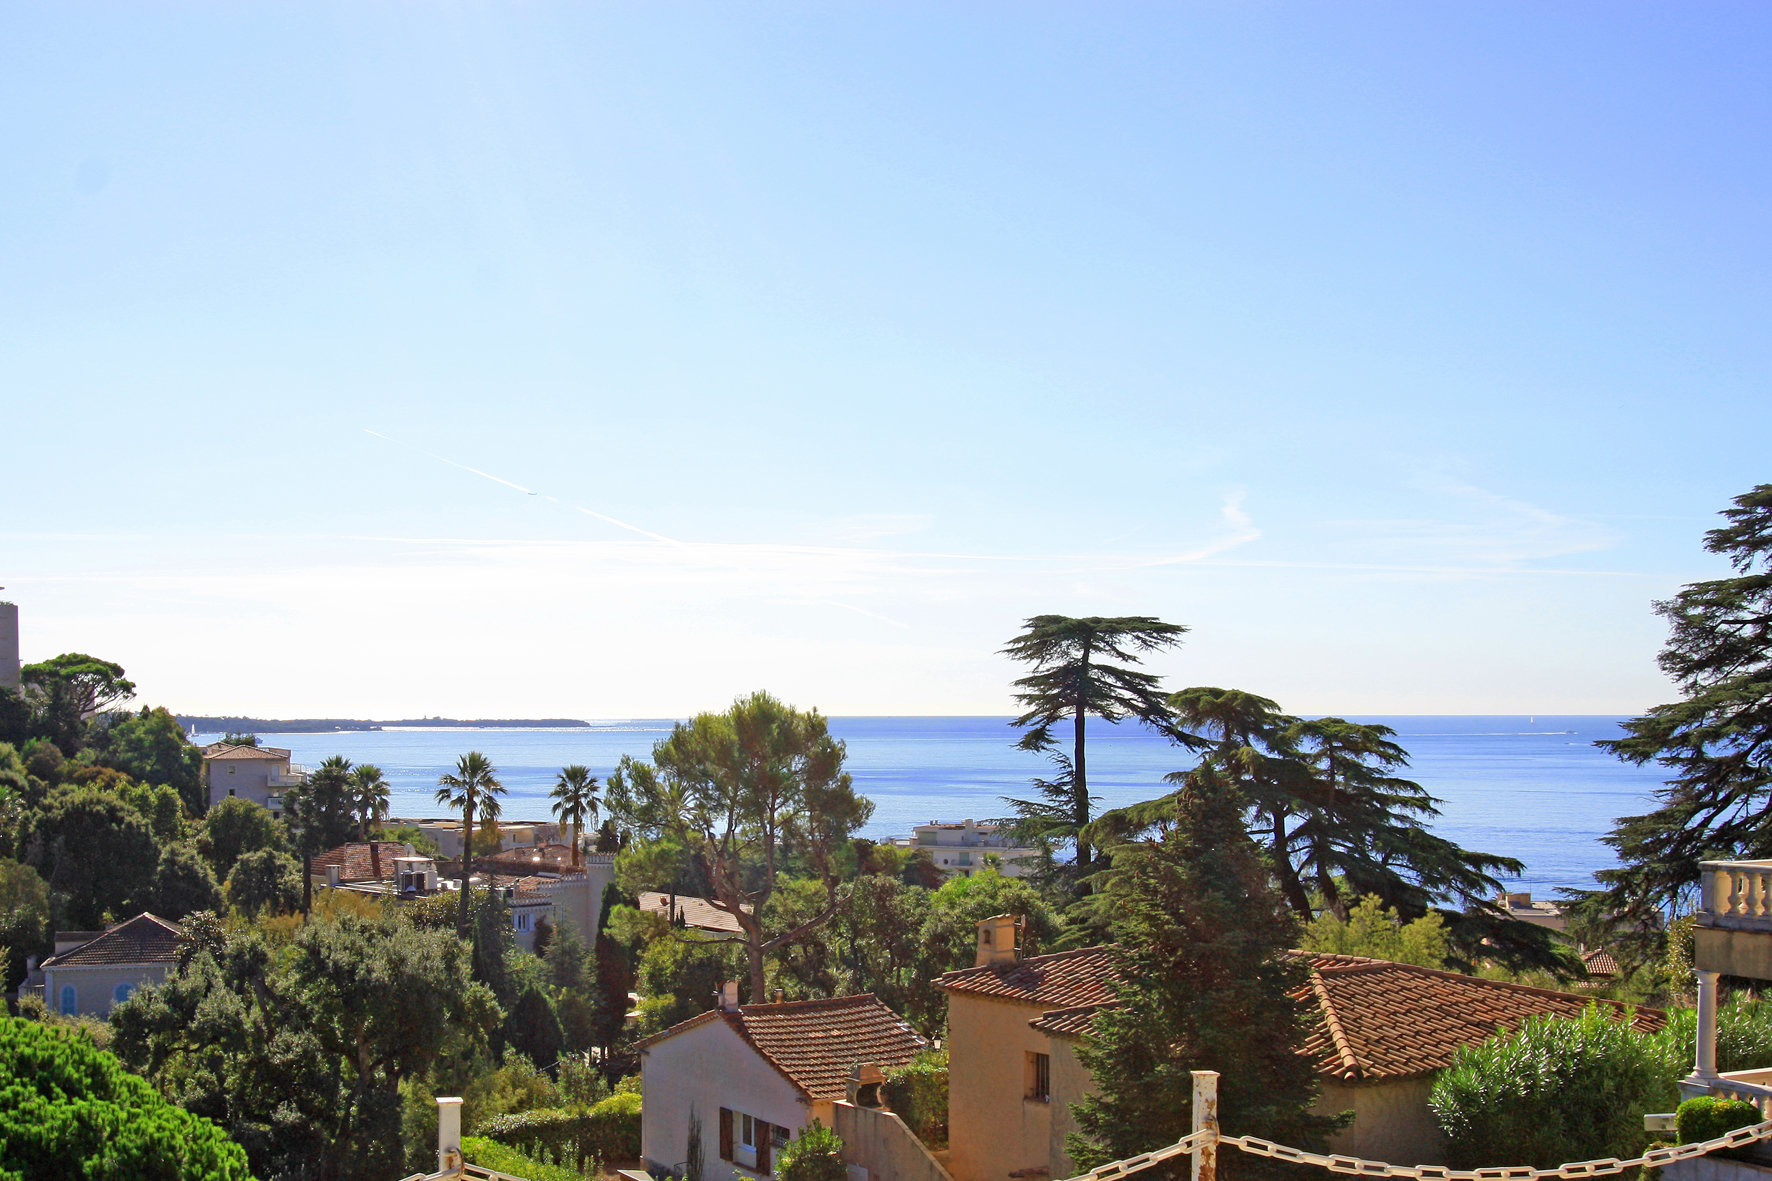 Sea view in Cannes